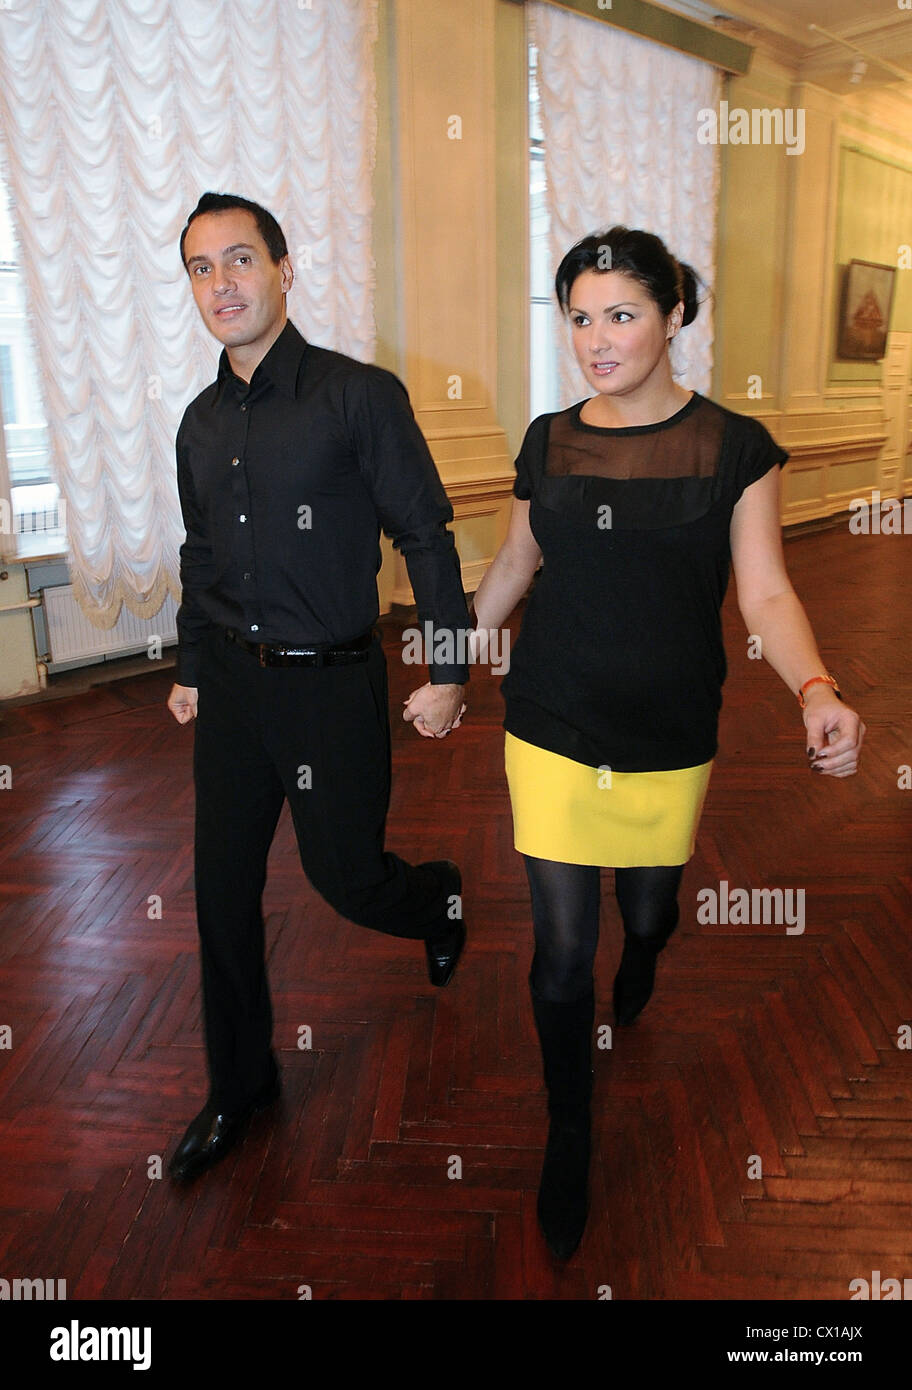 The parting of Anna Netrebko with her husband caused a stir 26.11.2013 61